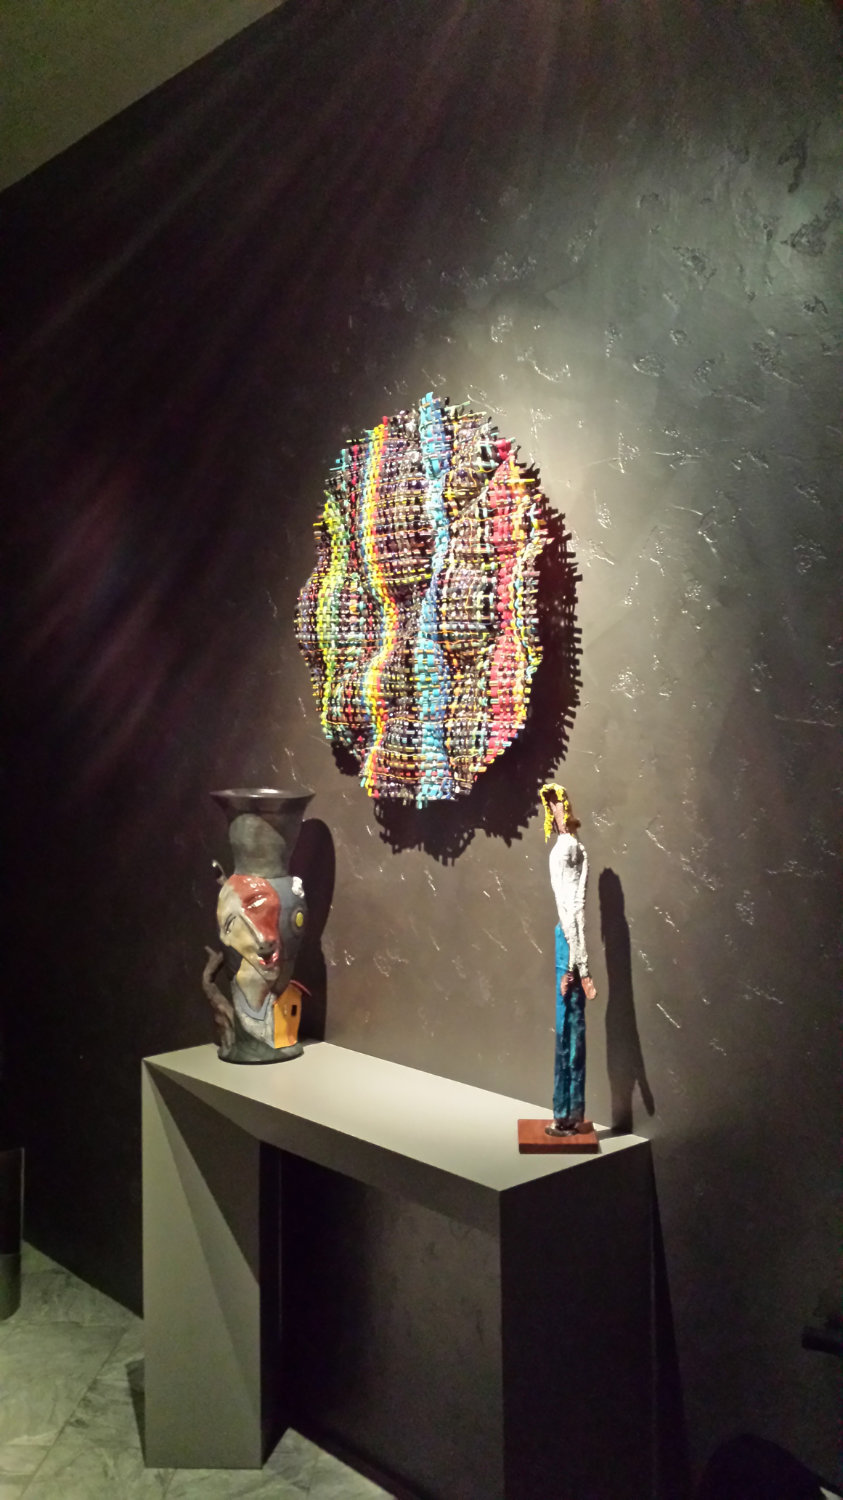 round-woven-glass-weaving-on-wall-over-art-sculptures.jpg